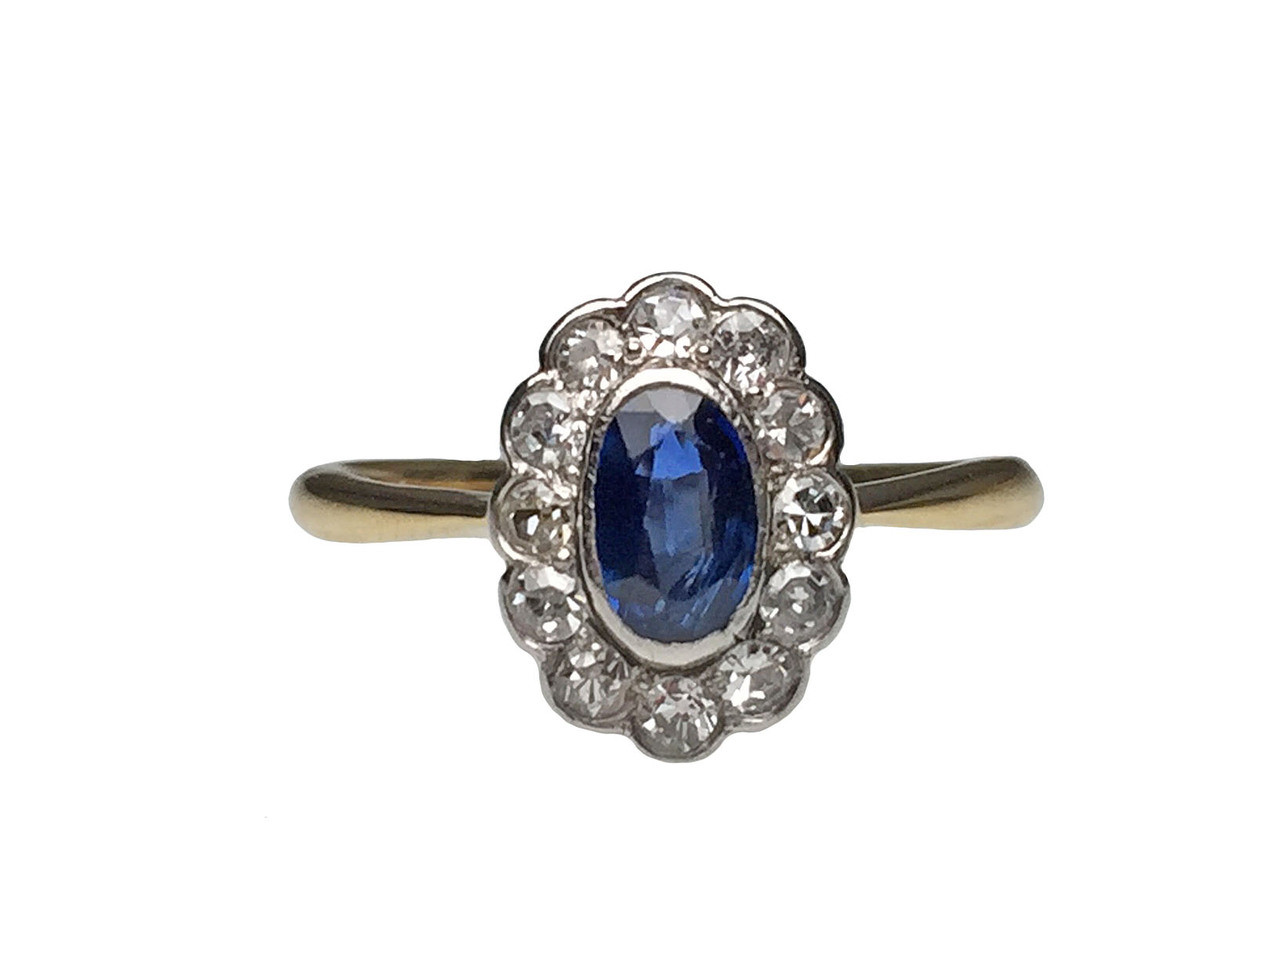 ea307322f83ed Silver Topped 18 Karat Yellow Gold Sapphire and Diamond Victorian Ring